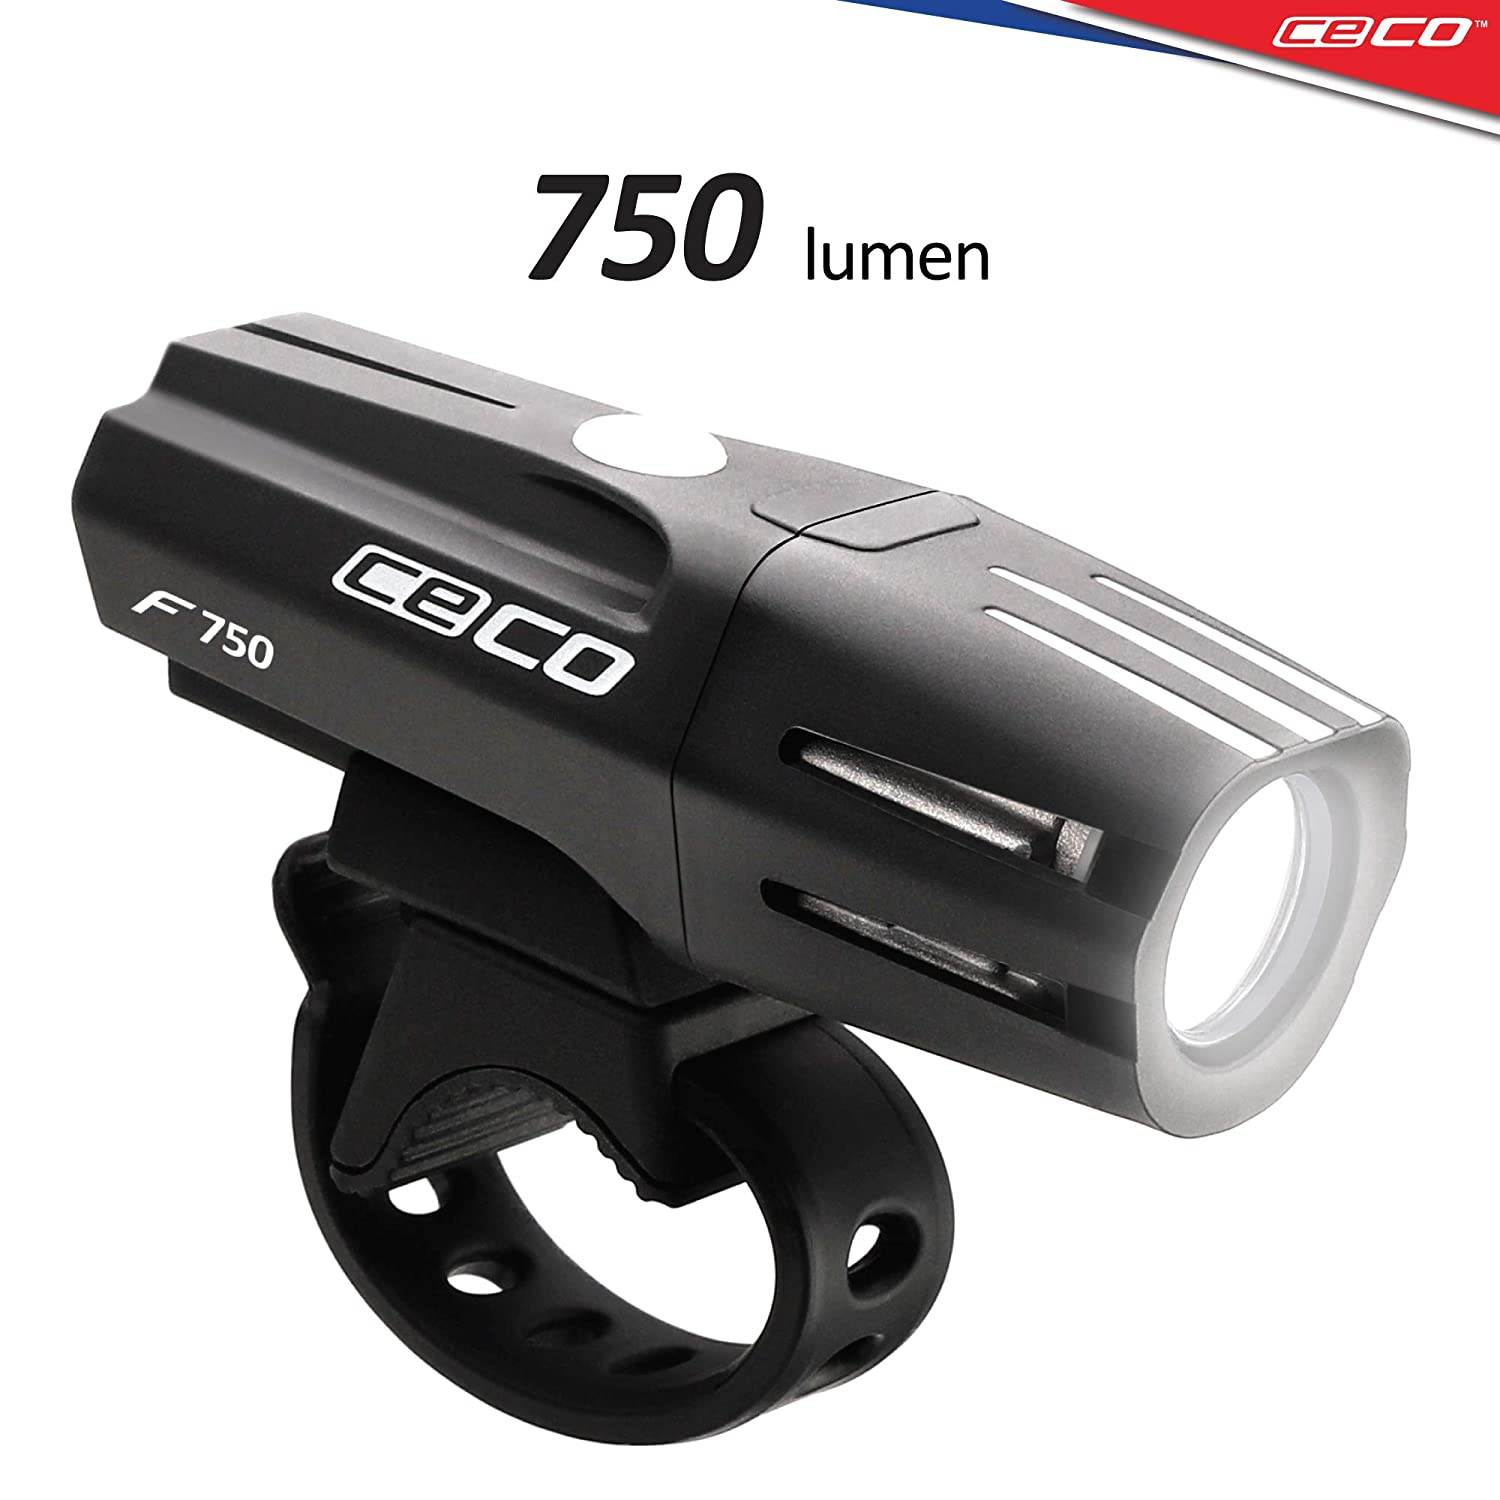 CECO-USA 750 Lumen USB Rechargeable Bike Light Tough Durable IP67 Waterproof FL-1 Impact Resistant Super Bright Model F750 Bicycle Headlight for Commuters, Road Cyclists, Mountain Bikers